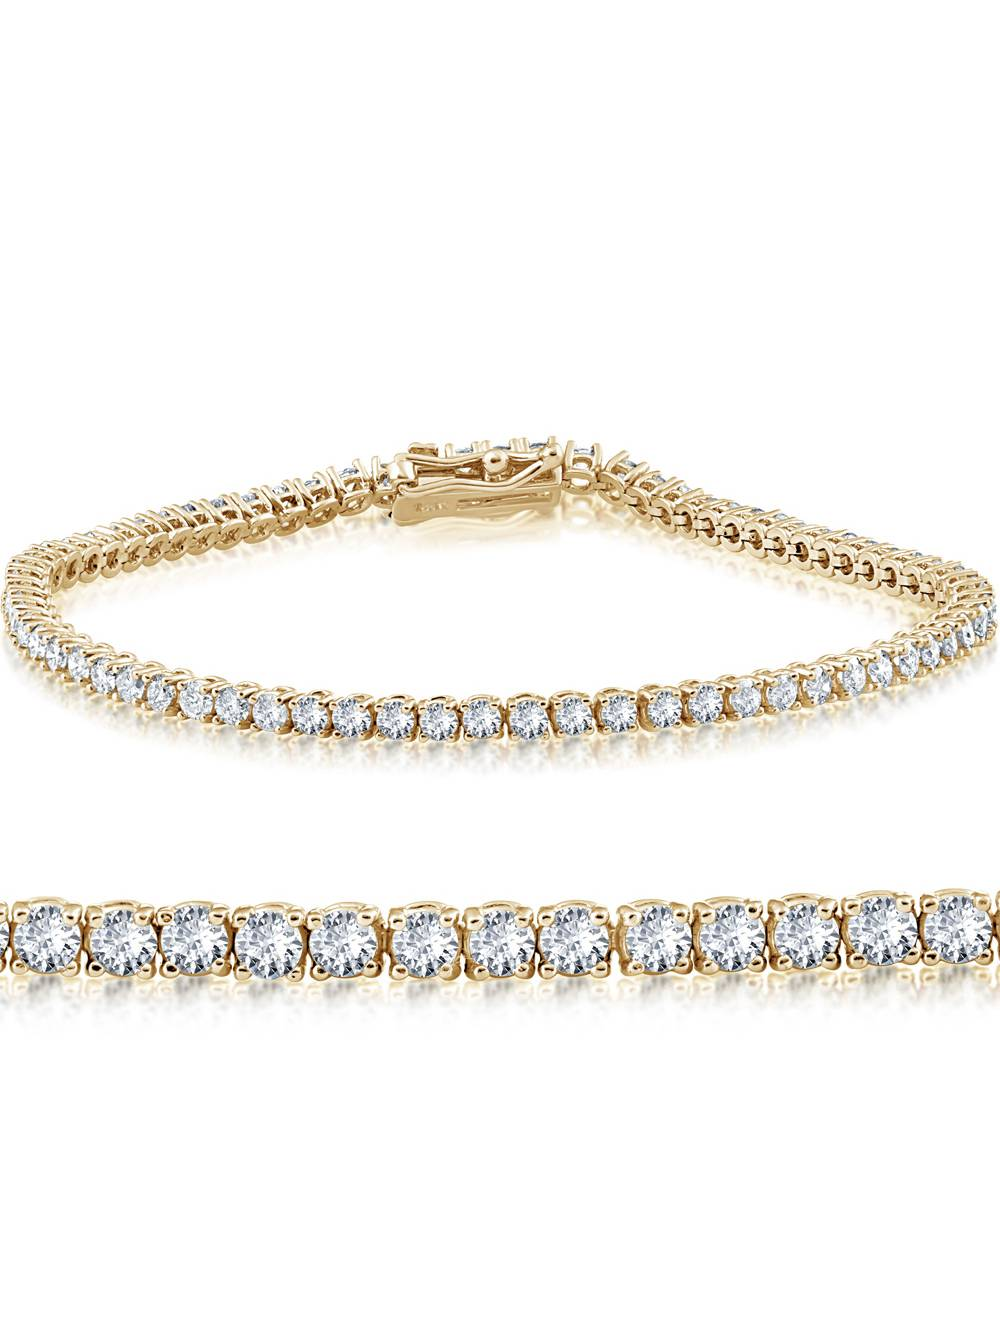 14K Yellow Gold 2 ct Diamond Tennis Bracelet 7""